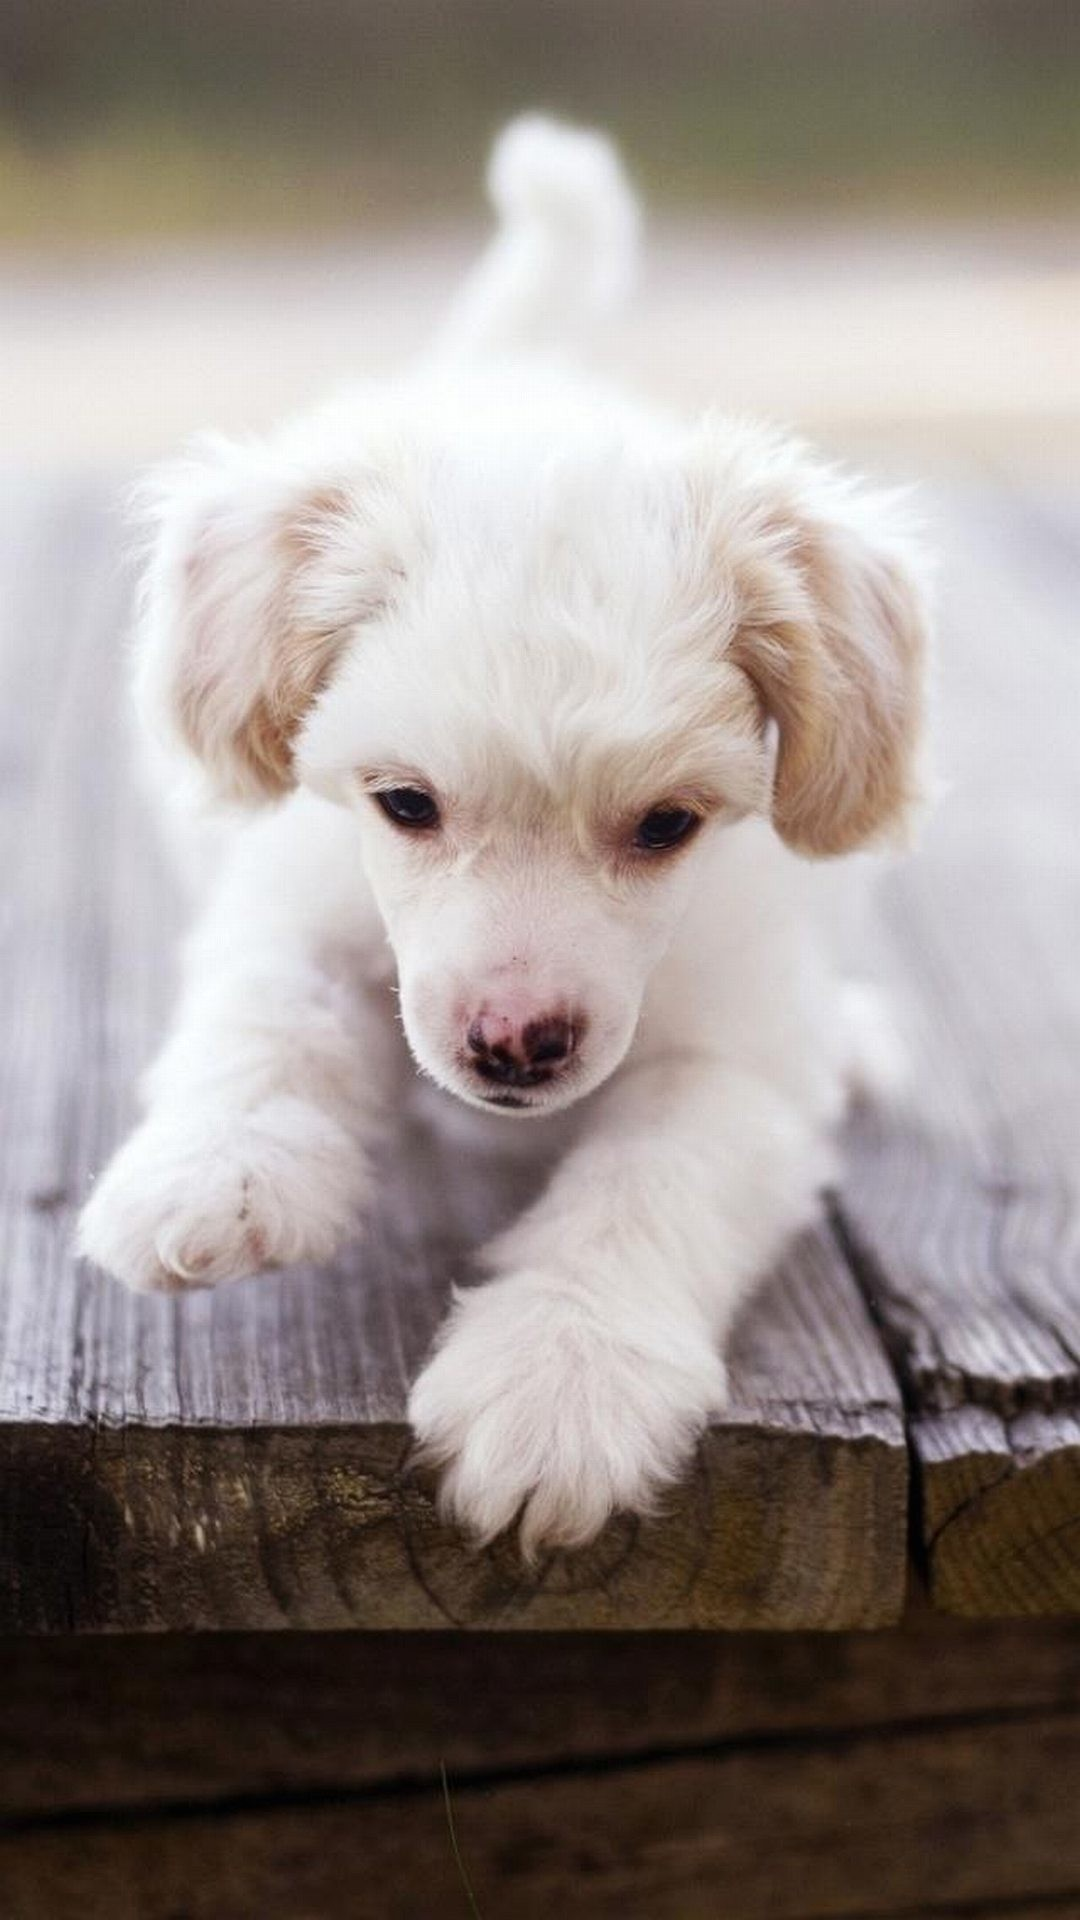 Cute Puppies Wallpapers for iPhone. Animals Phone Backgrounds. | @mobile9